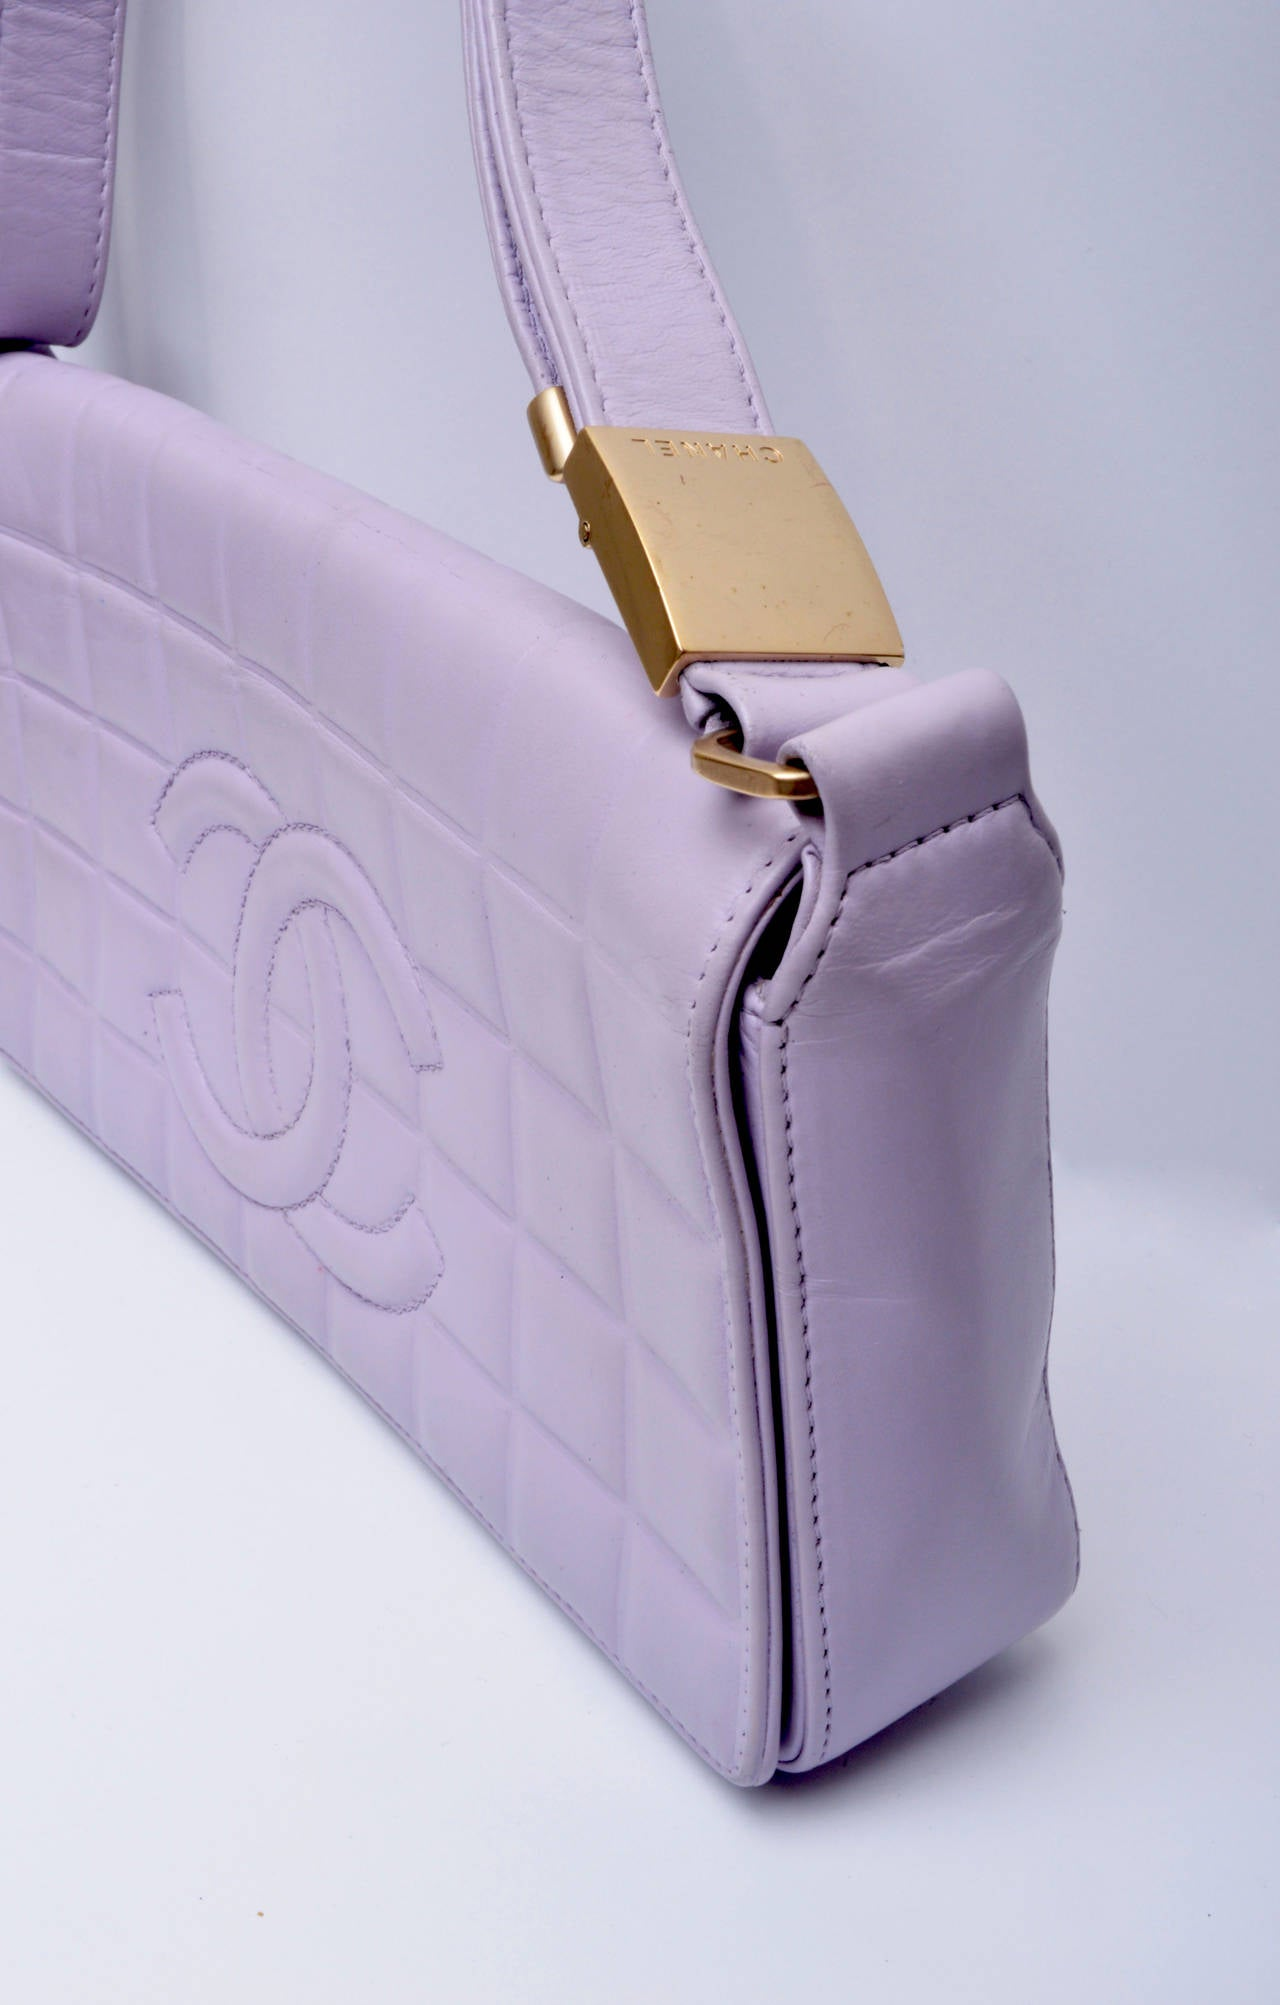 Chanel Cc Lilac Leather Quilted Handbag In Good Condition For Sale In San Francisco, CA